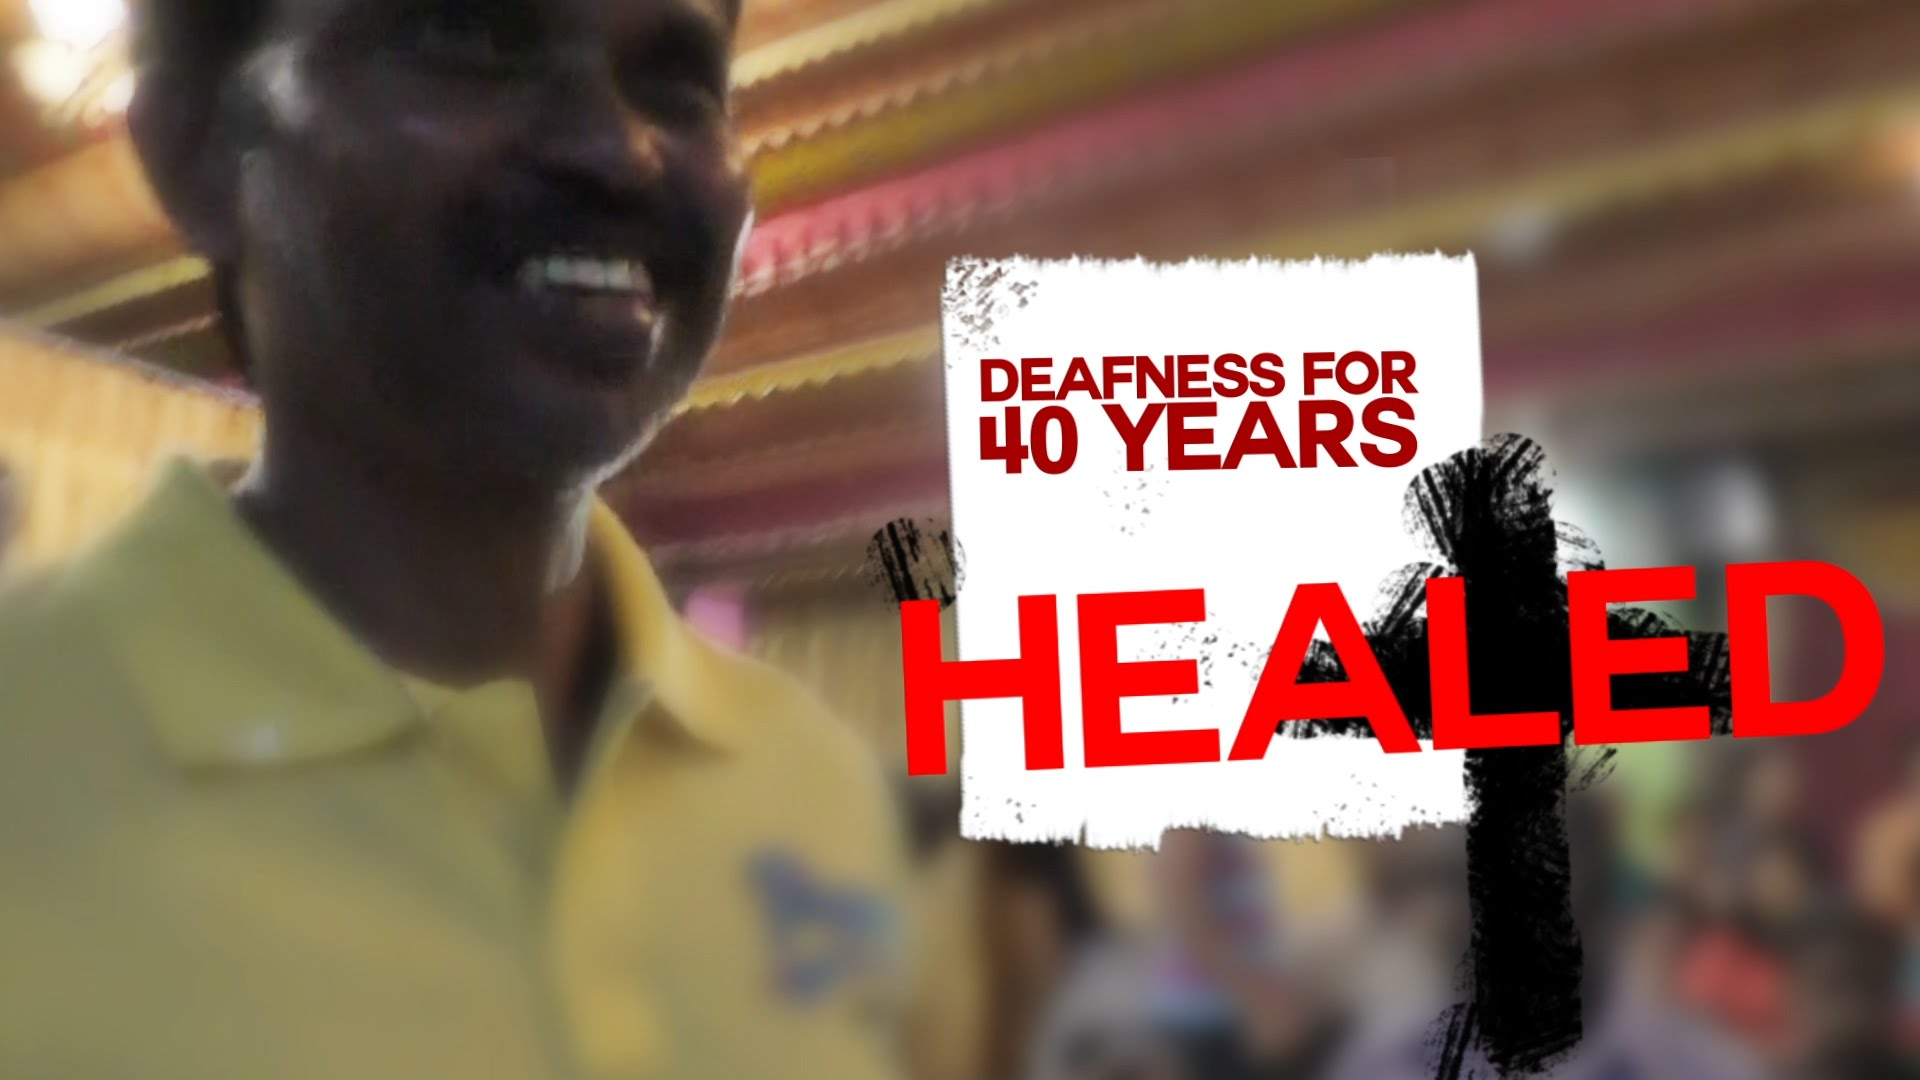 WOW HEALING DIARIES – DEAFNESS LEAVES AFTER 40 YEARS!